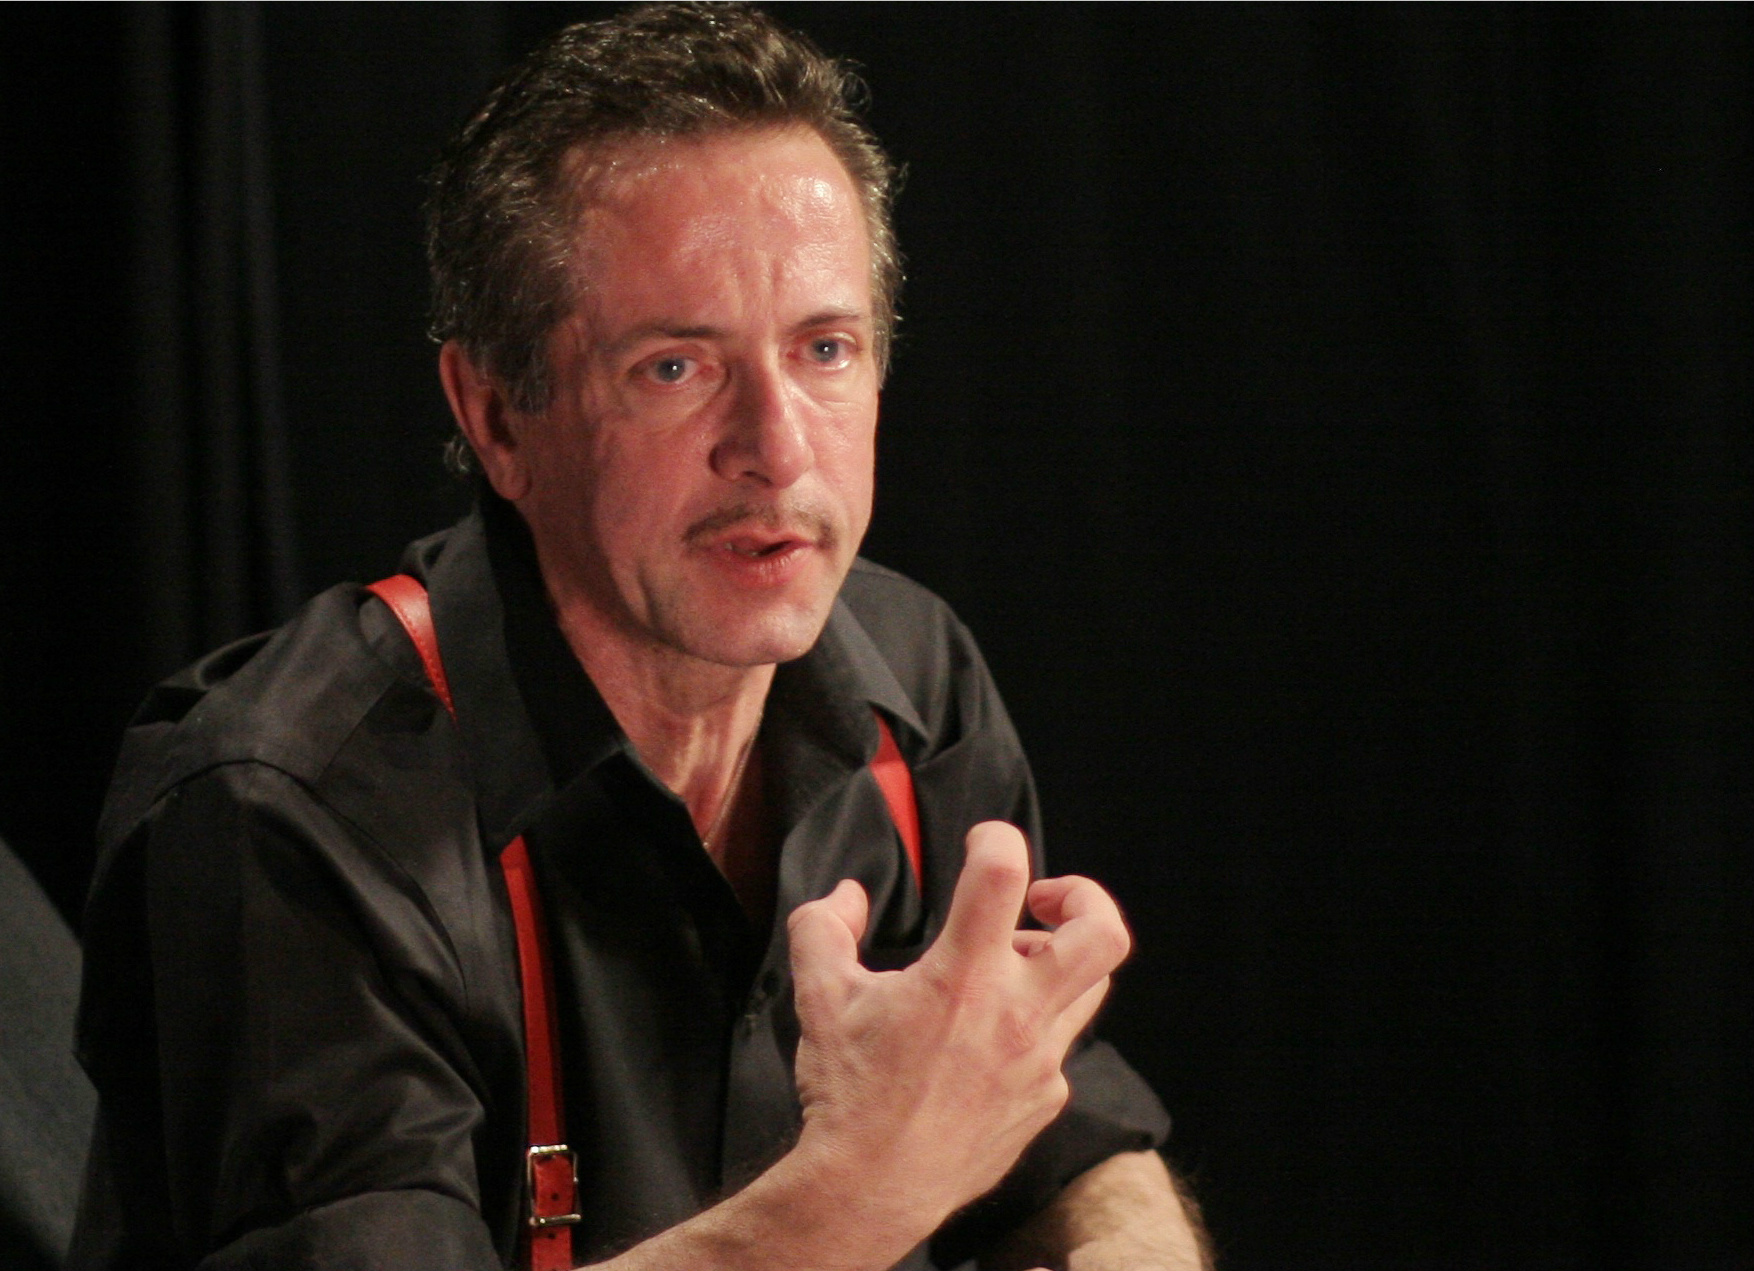 Clive Barker Producing TV Series Based On His Novel Weaveworld For the CW